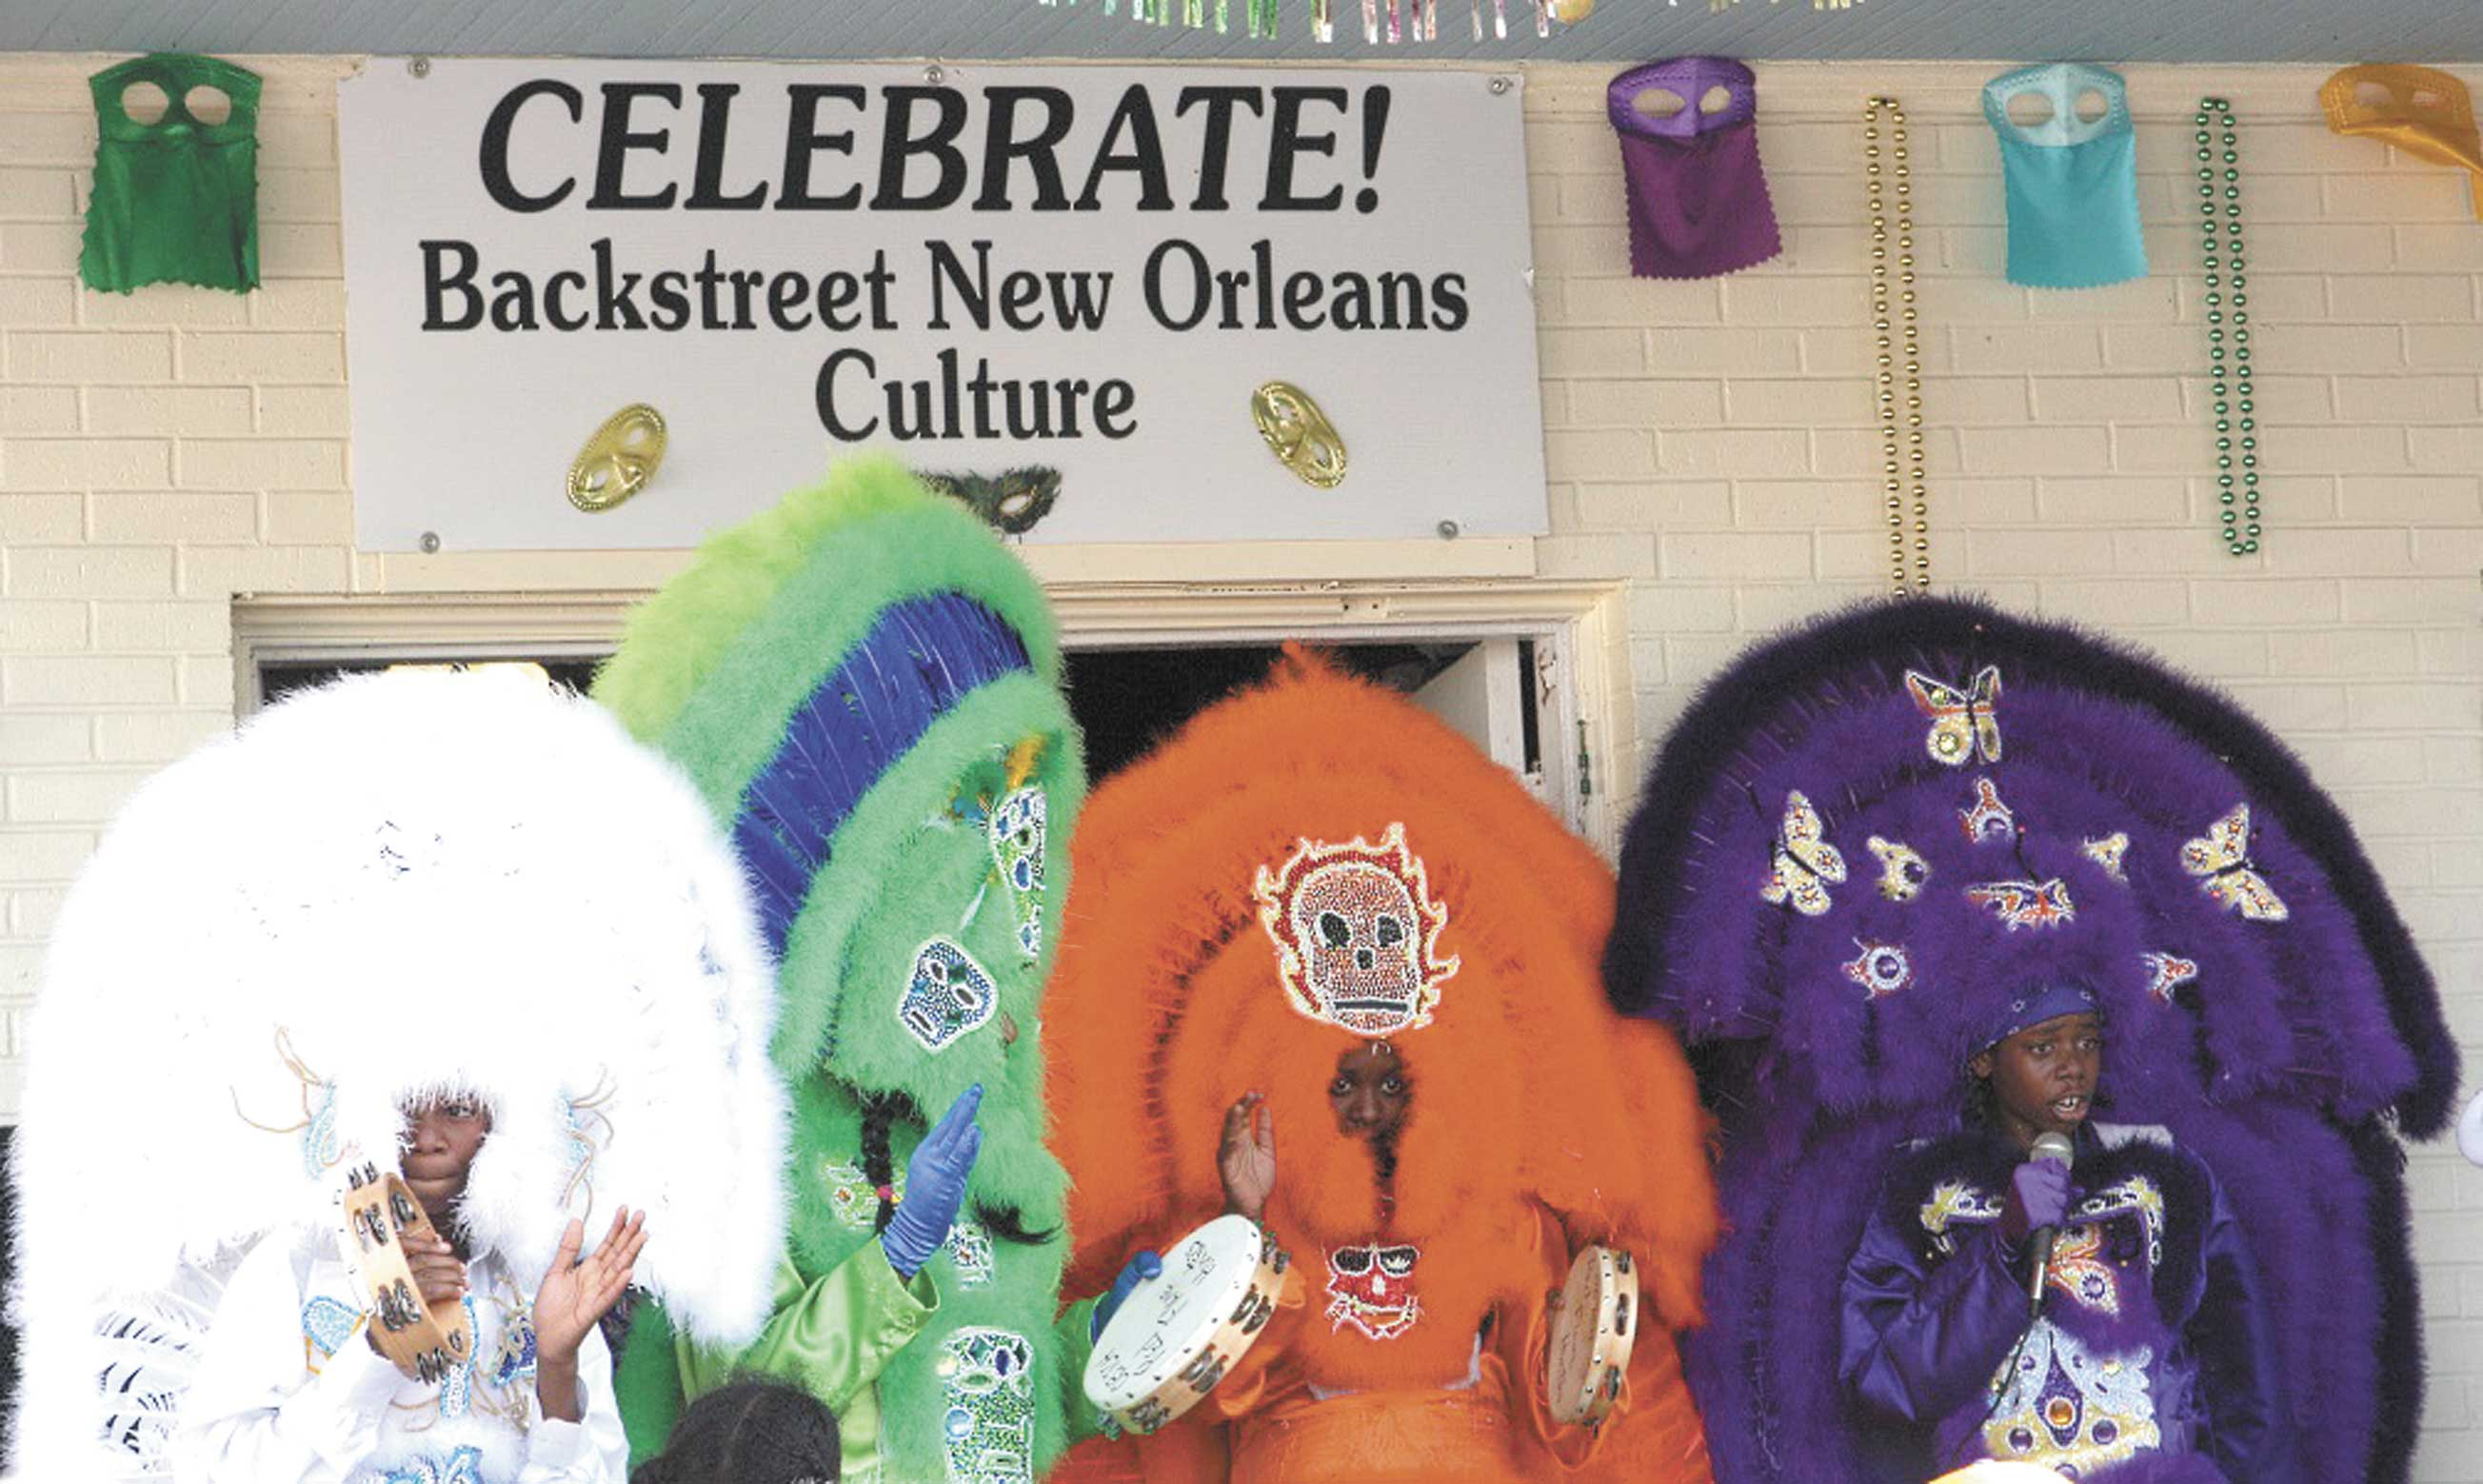 Mardi Gras Indians outside of the Backstreet New Orleans Culture Museum